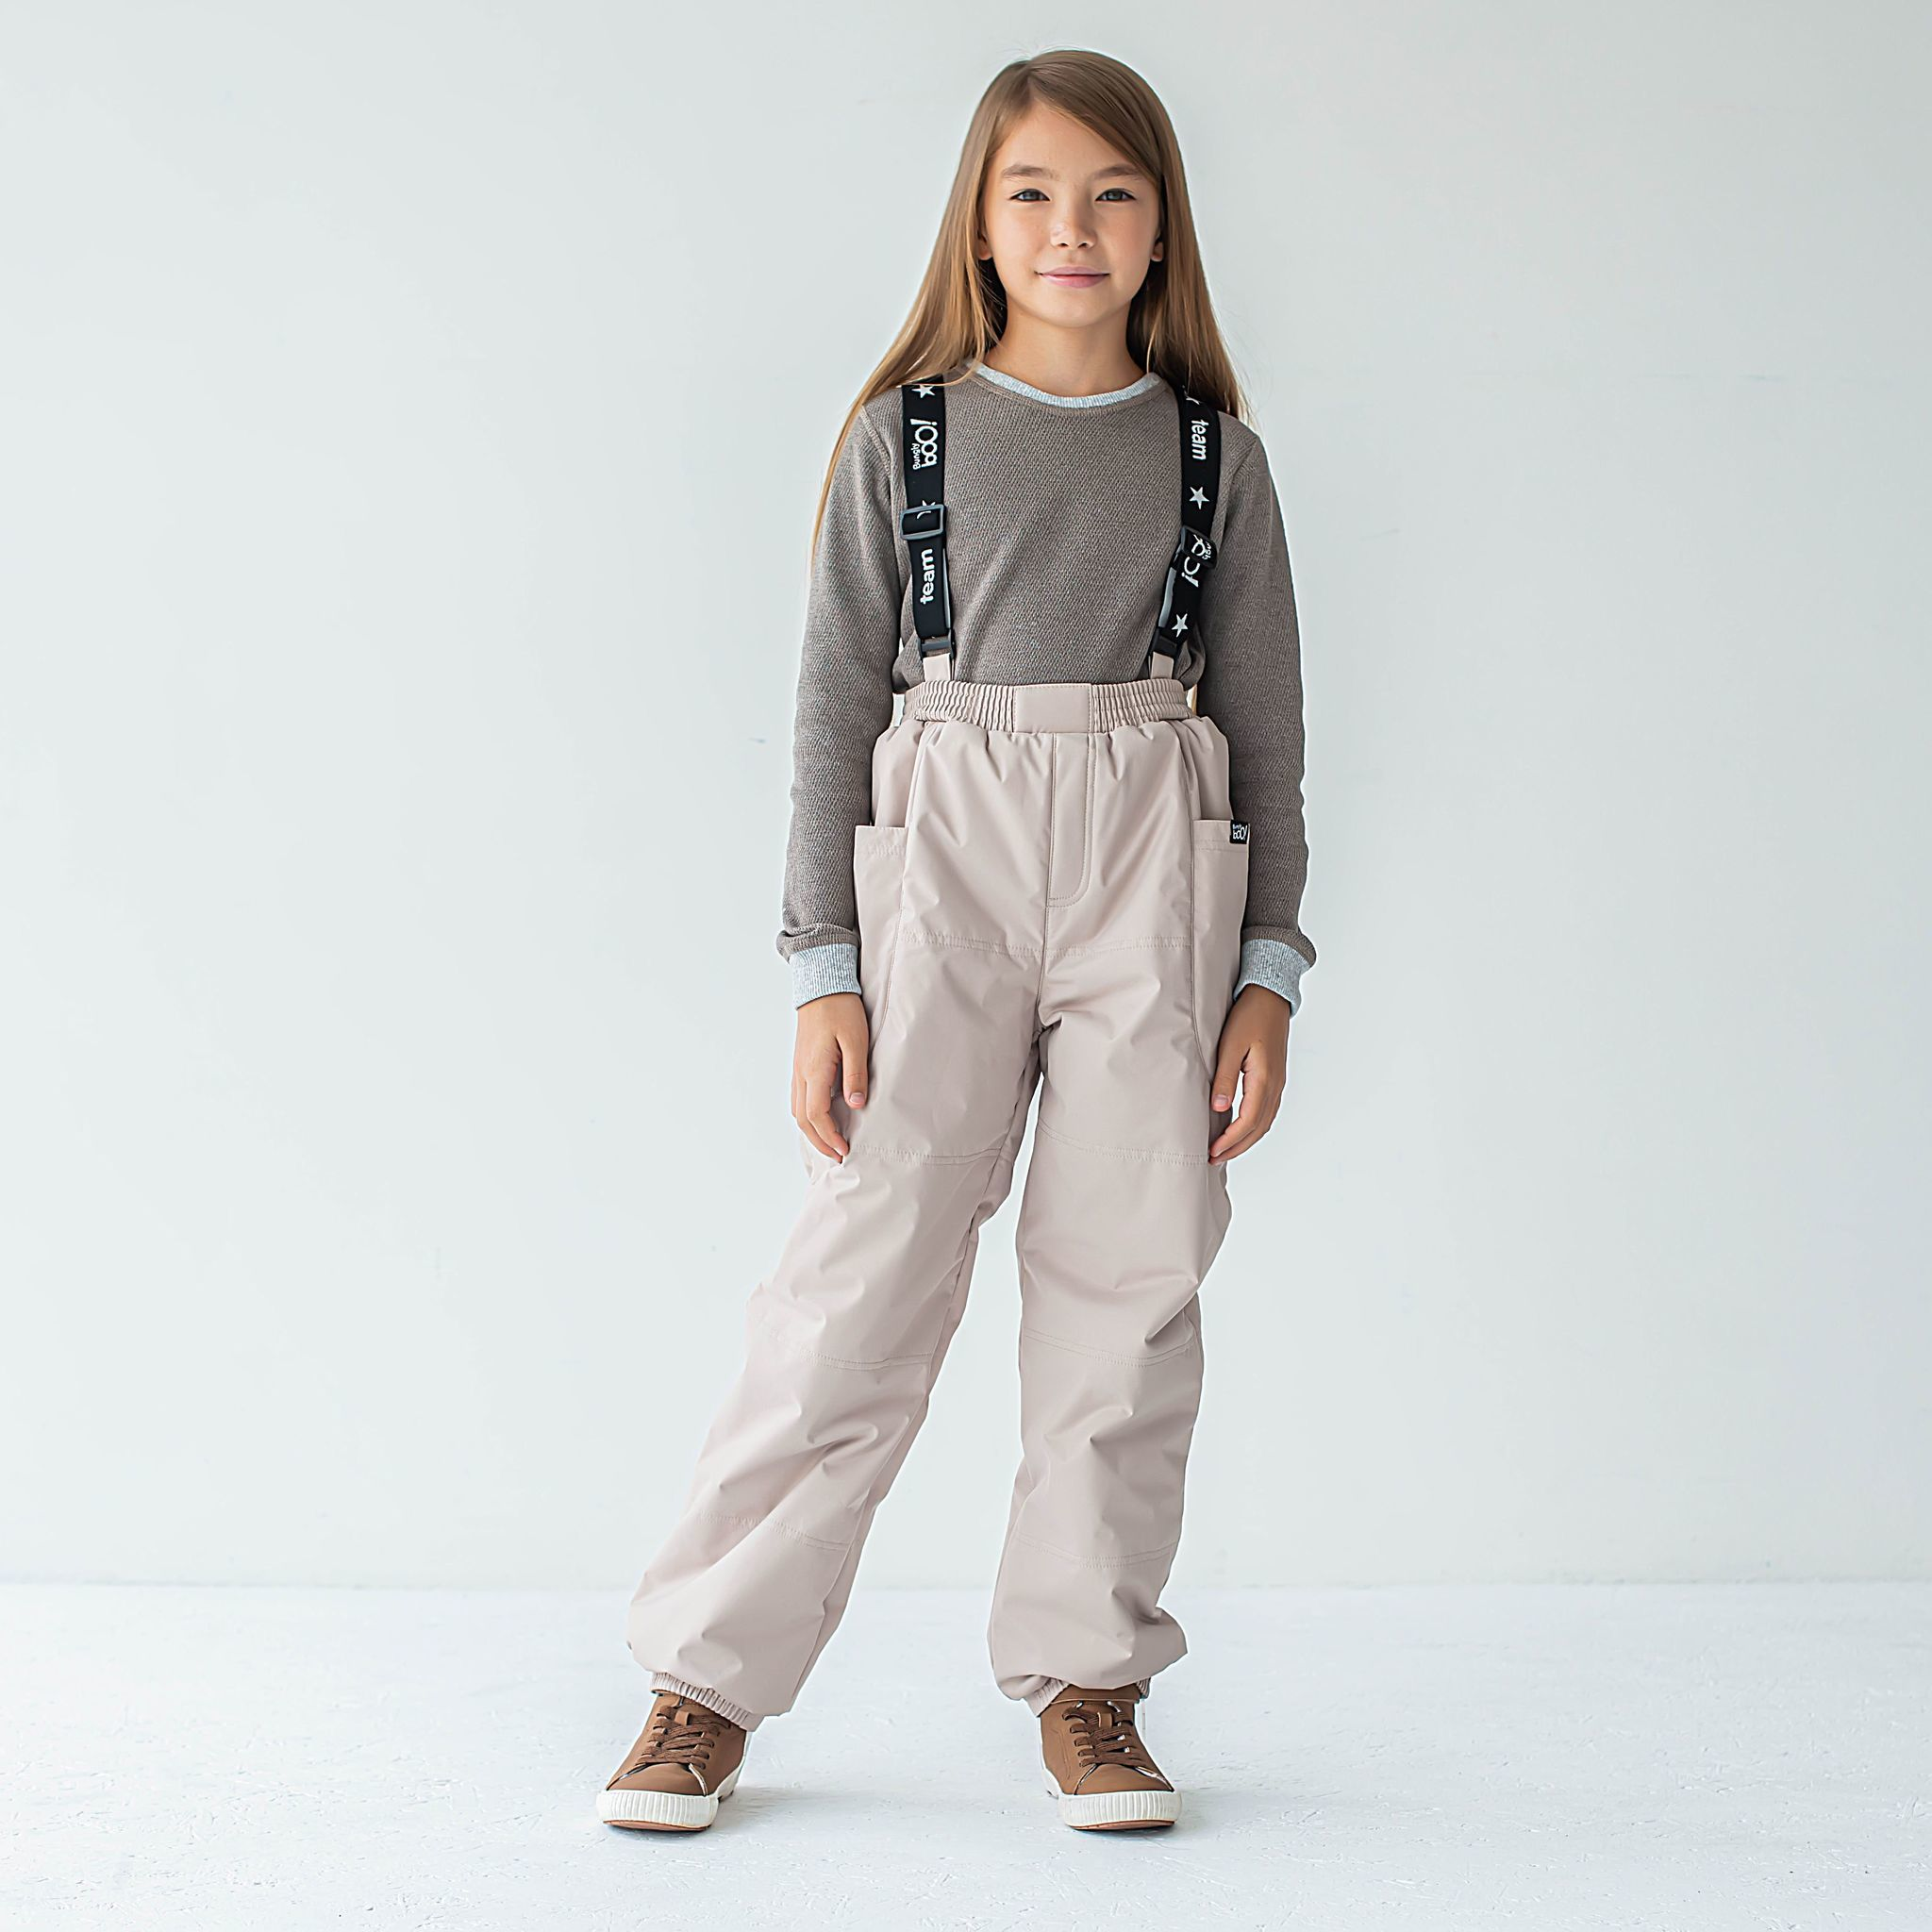 Winter membrane trousers for teens - Beige